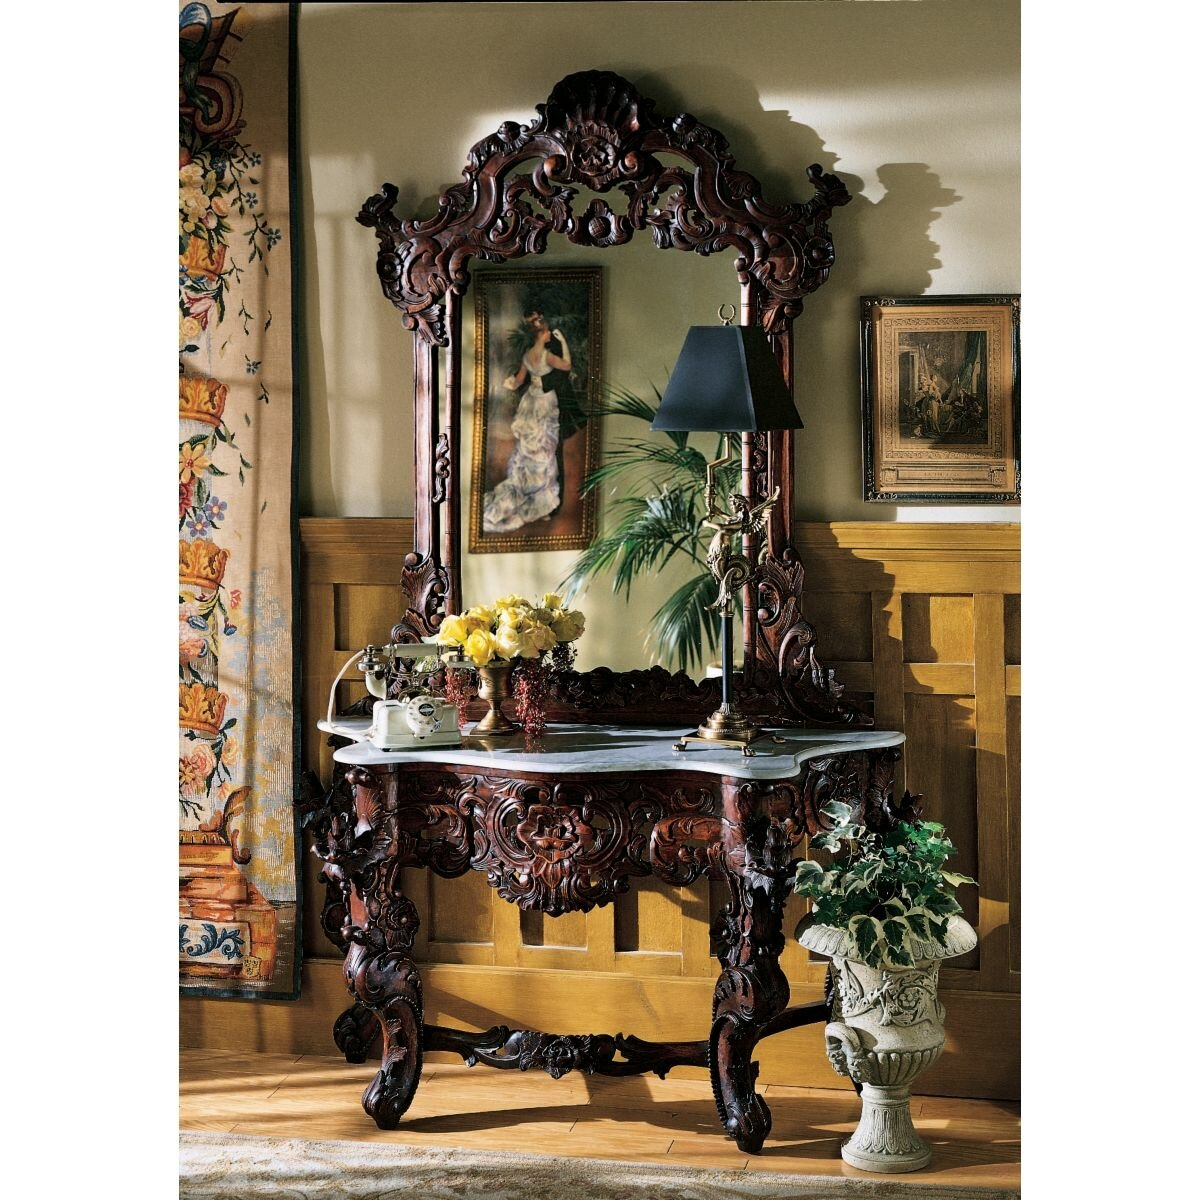 Entryway Foyer Console Table Amp Mirror Set : Design toscano hapsburg console table and mirror set